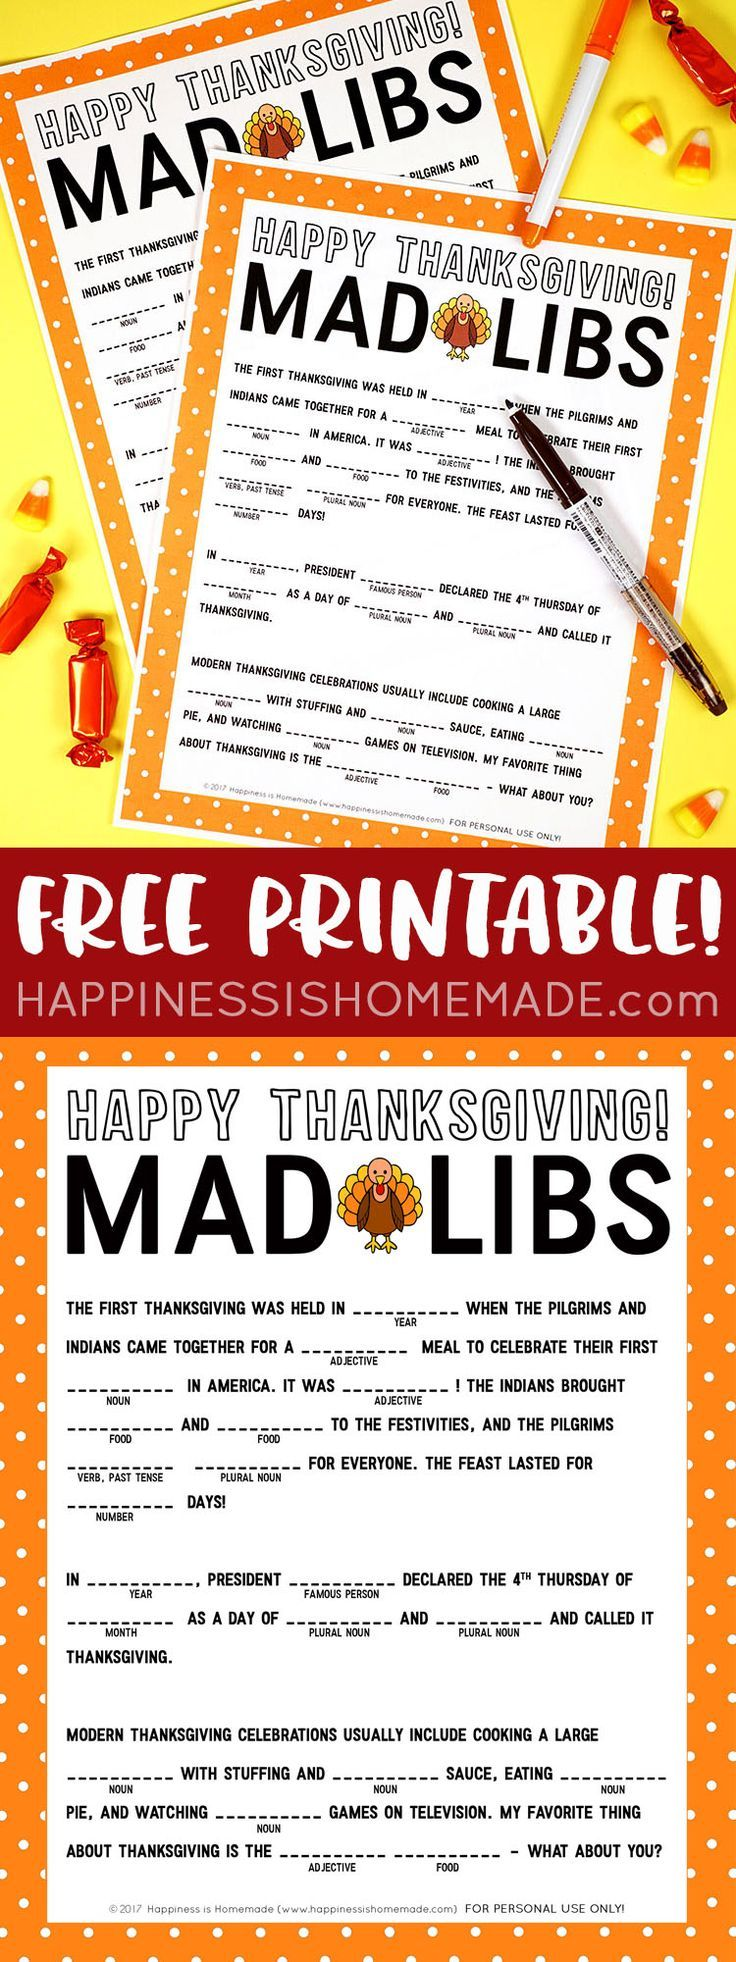 Thanksgiving Mad Libs Printable - This silly printable Thanksgiving Mad Libs game is perfect for keeping the kids entertained while the turkey finishes cooking!